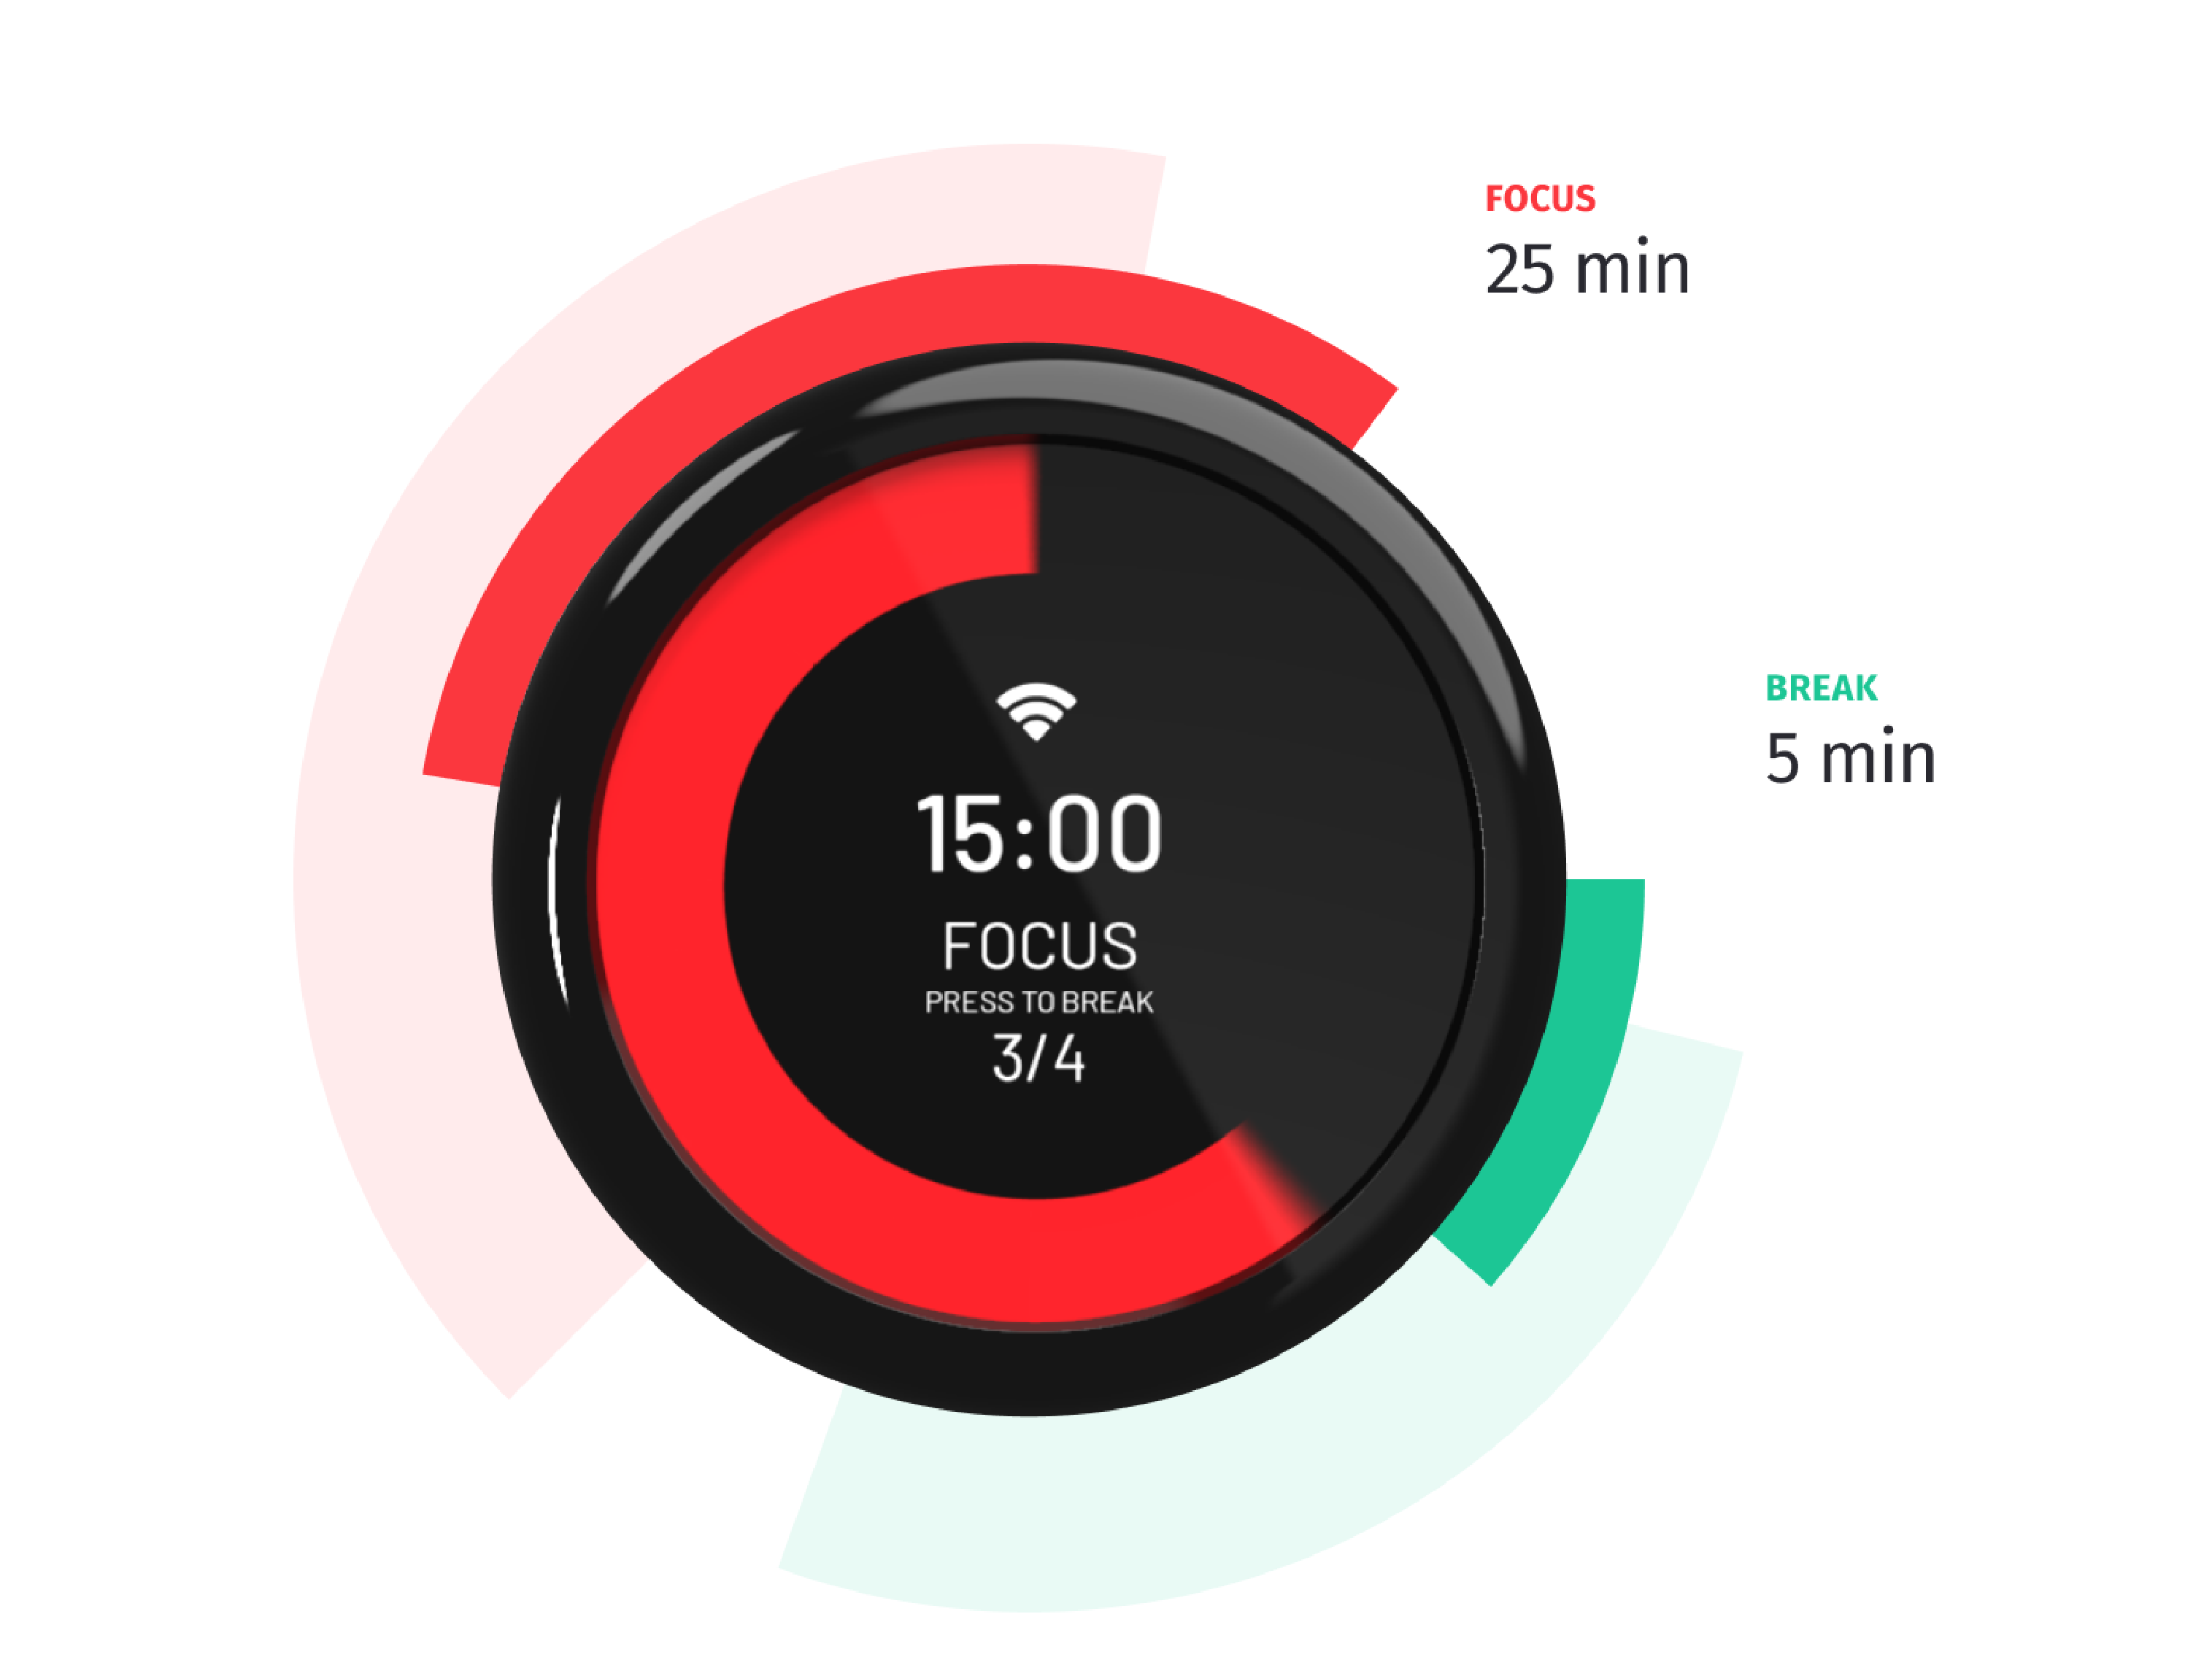 How the Pomodoro Technique Can Keep You Focused